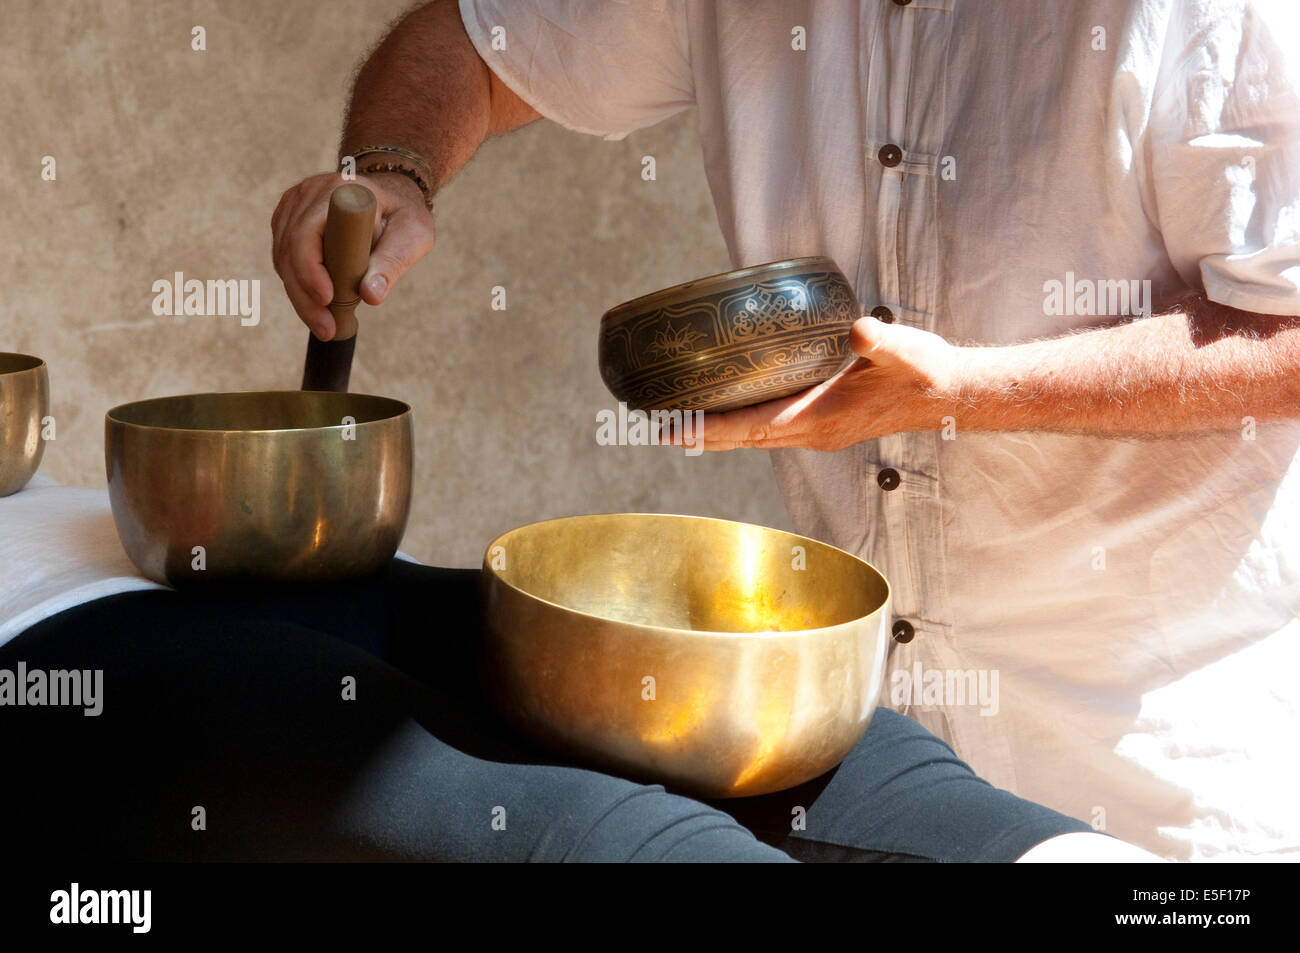 Tibetan Bells Therapy, Singing Bowl in the Hands of a Therapist - Stock Image